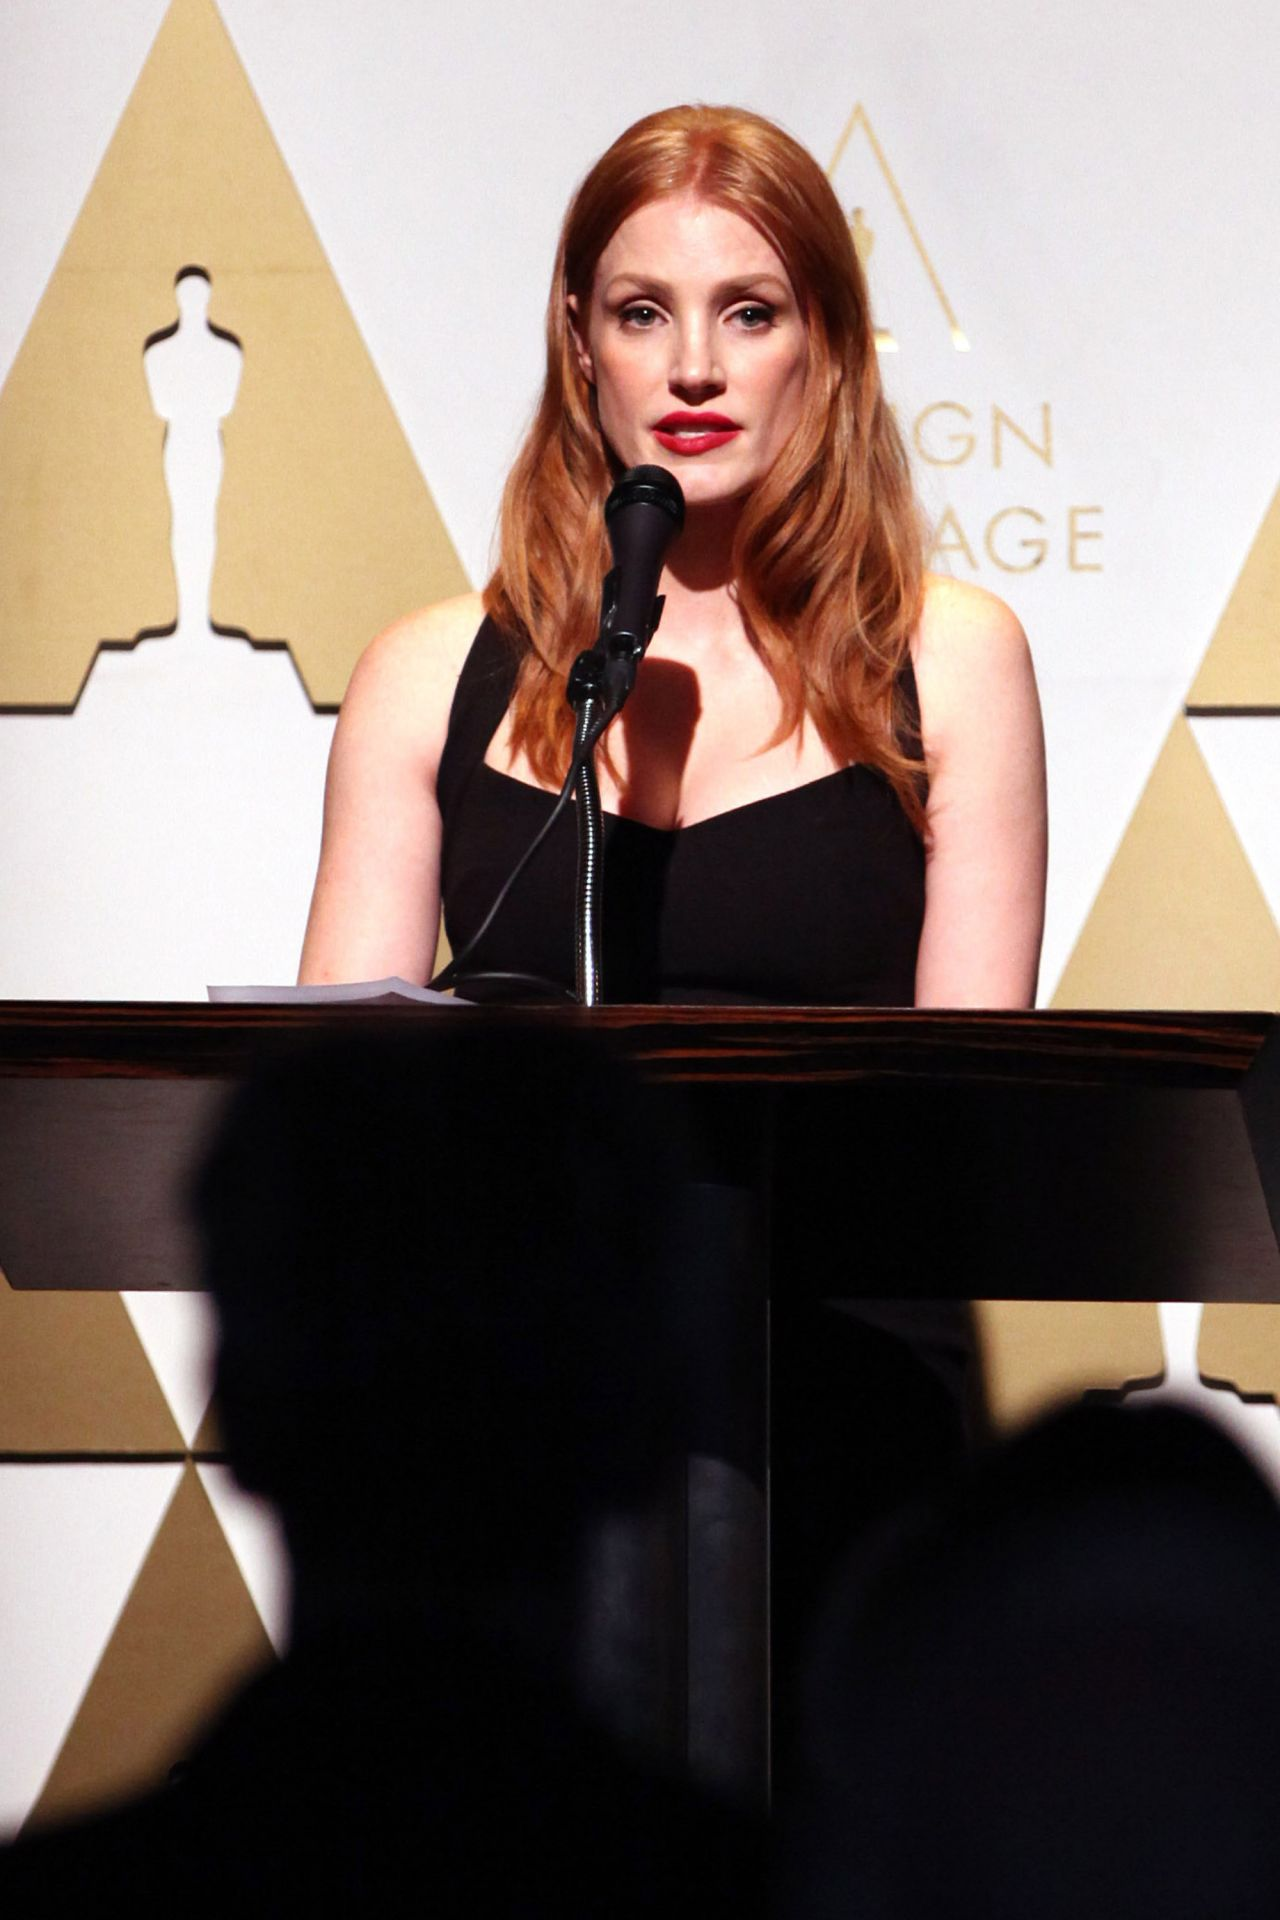 Jessica Chastain - 2015 Academy Awards Oscar Week Celebrates Foreign Language Films in Los Angeles